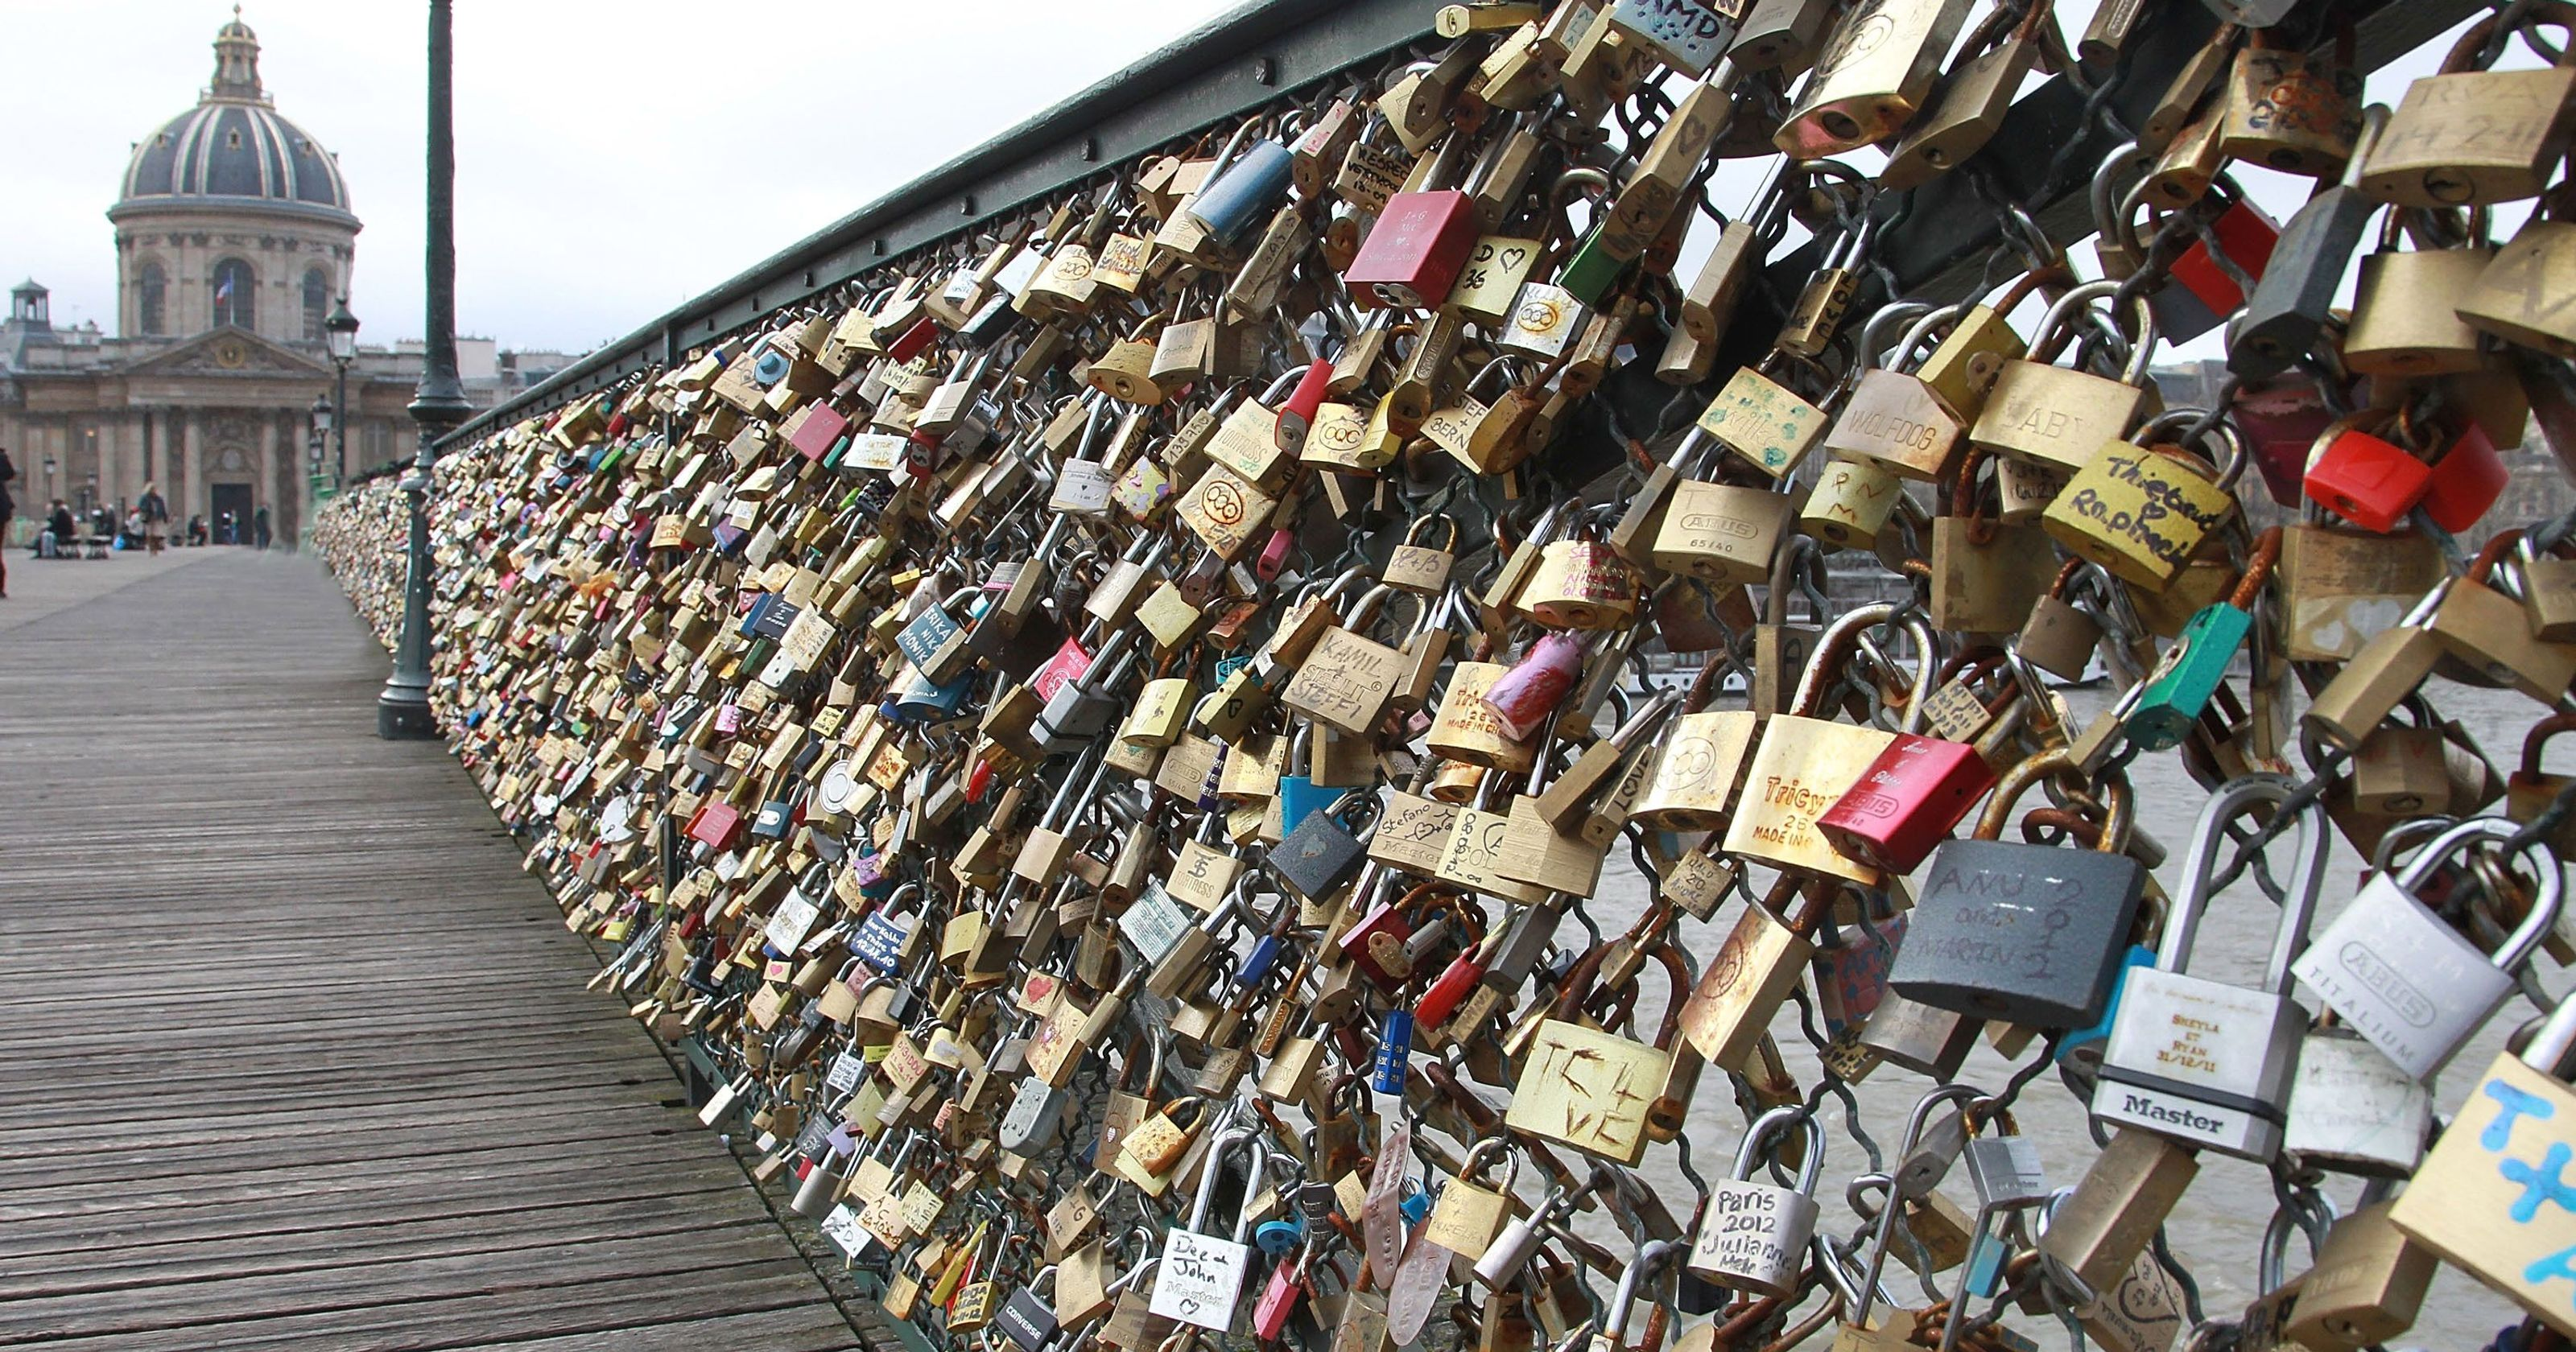 Pont des Arts bridge in Paris